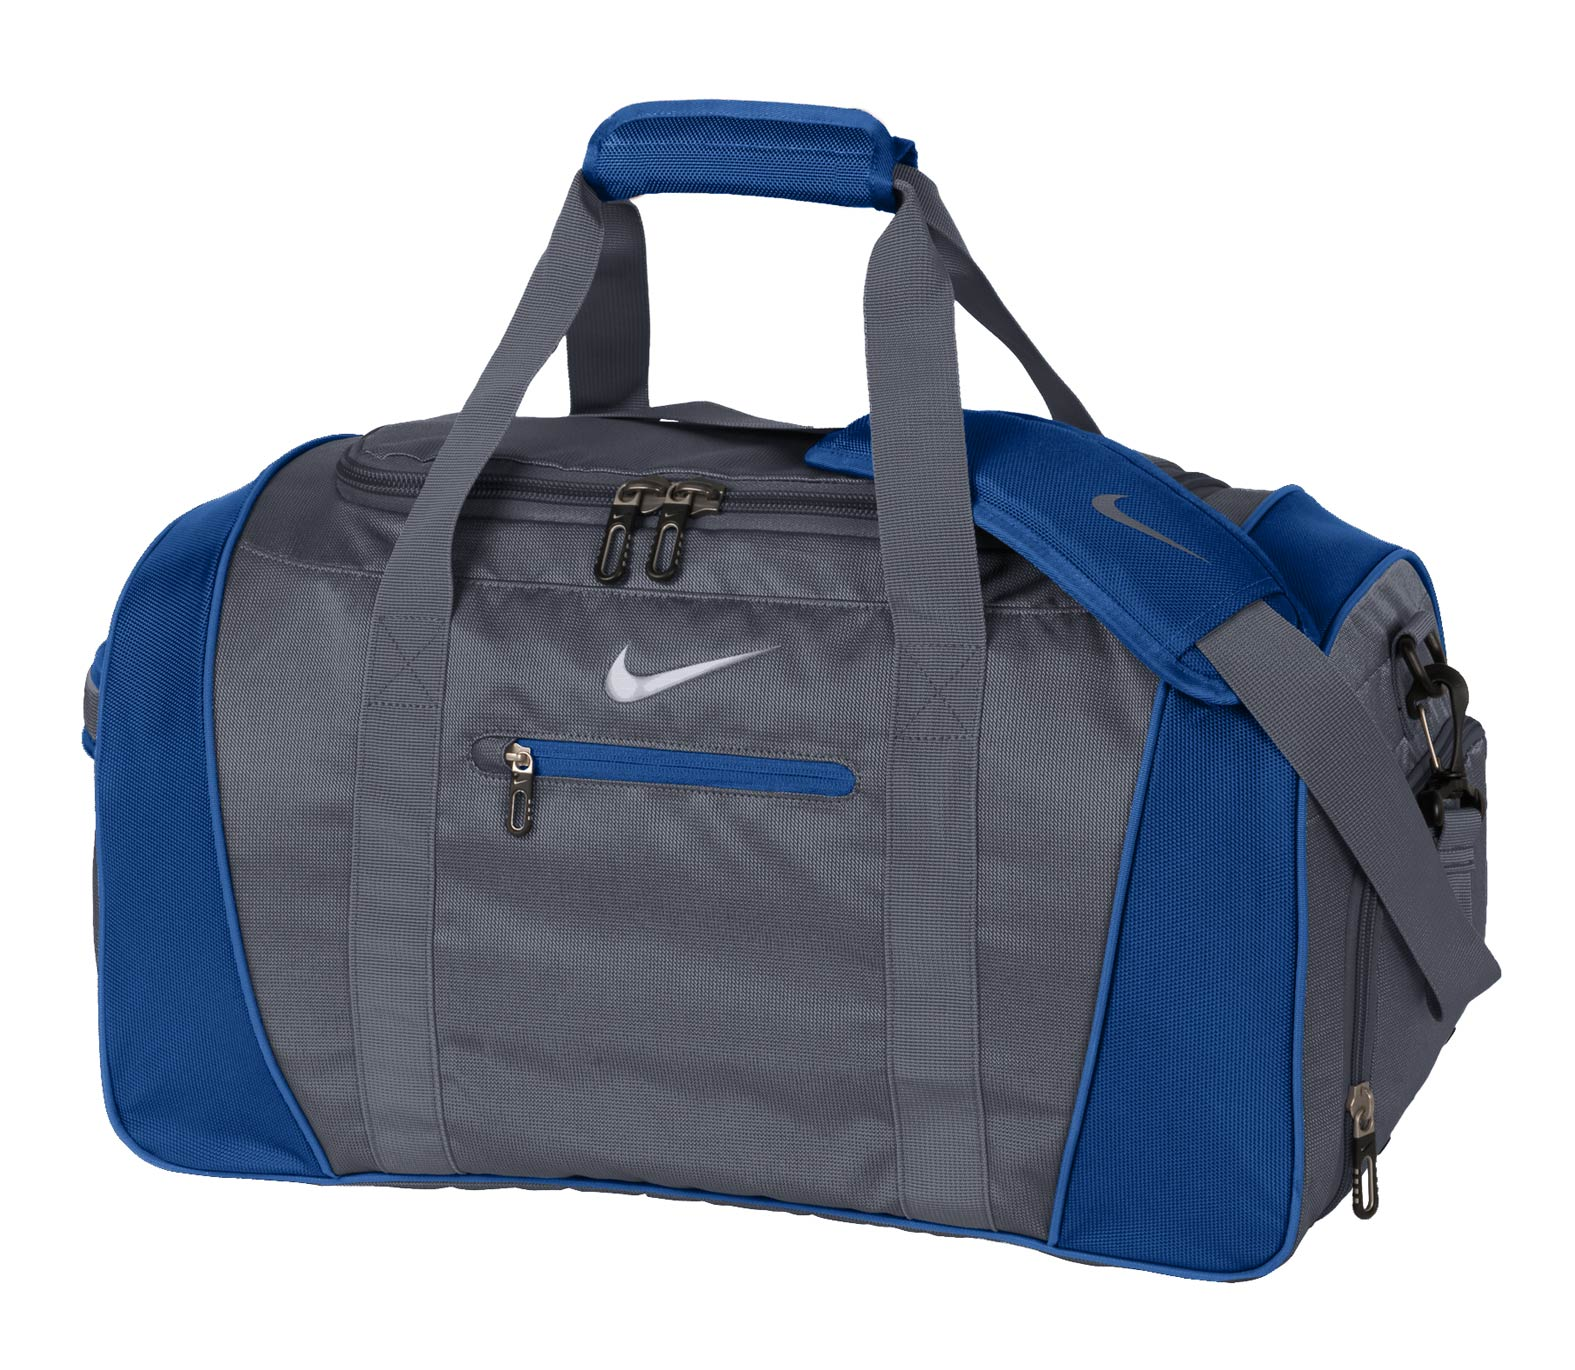 b8d9d52b35 Custom Nike Golf Bags   Backpacks